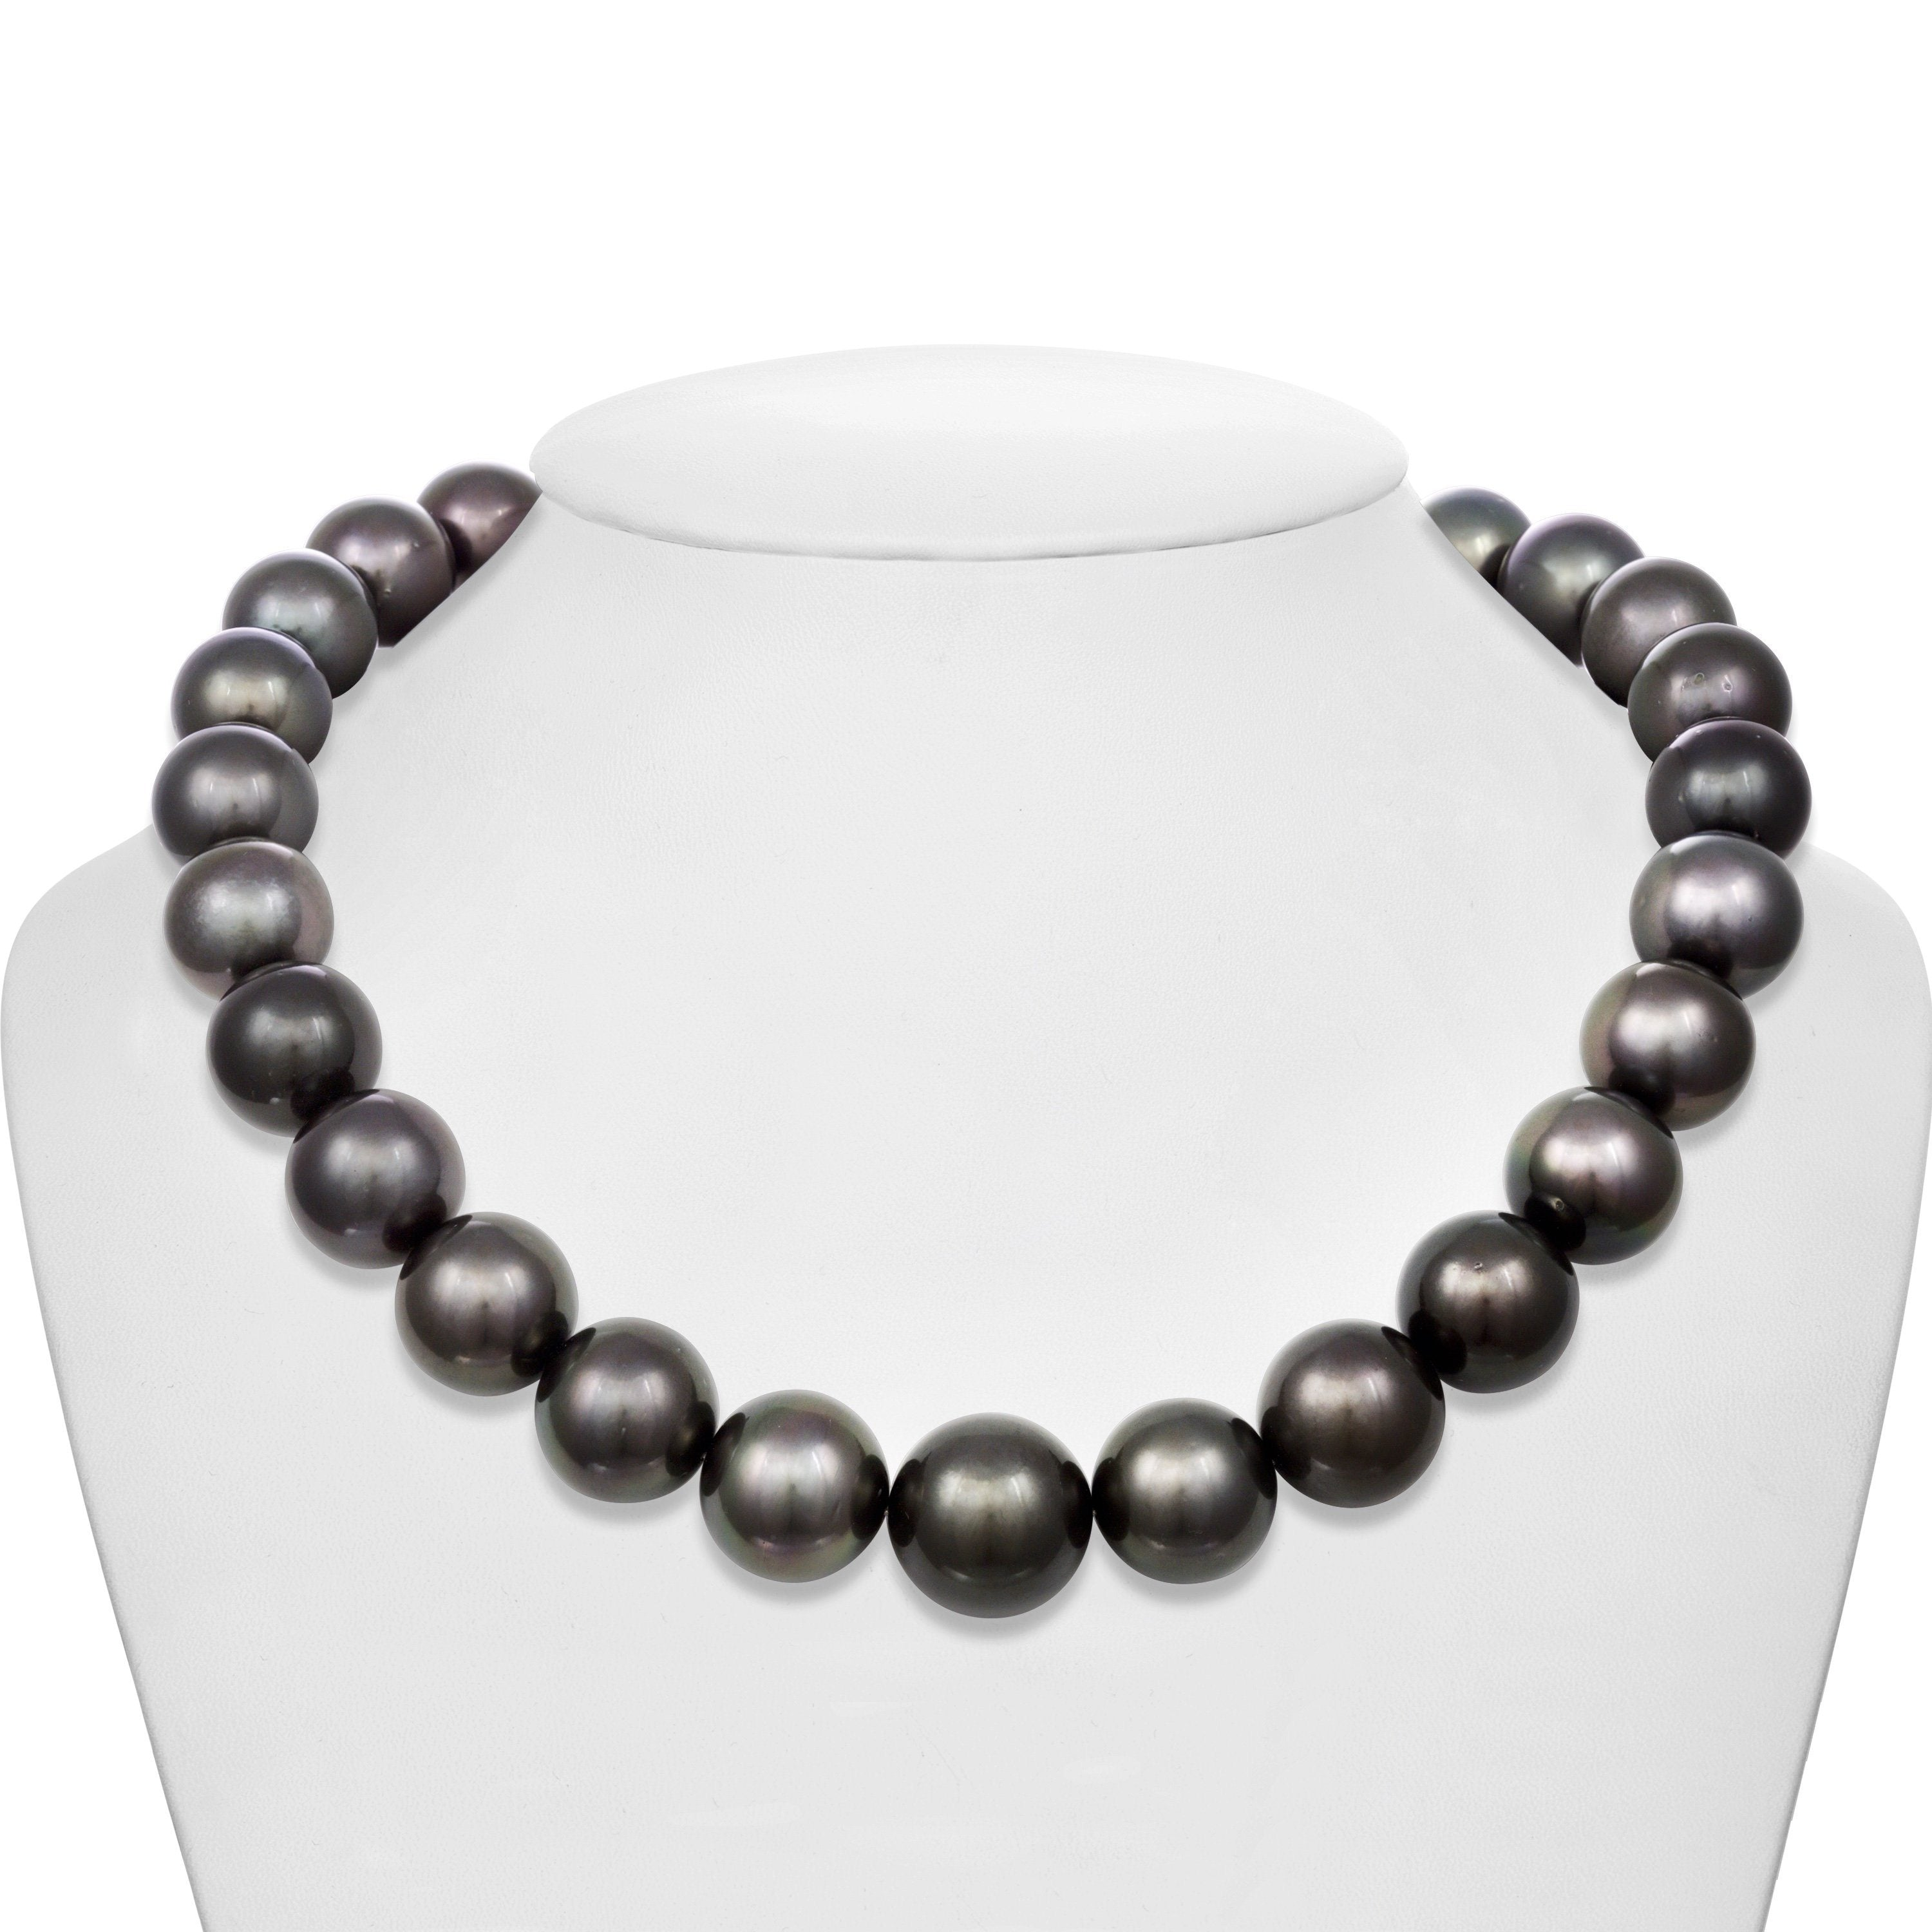 The Showstopper Tahitian Pearl Necklace